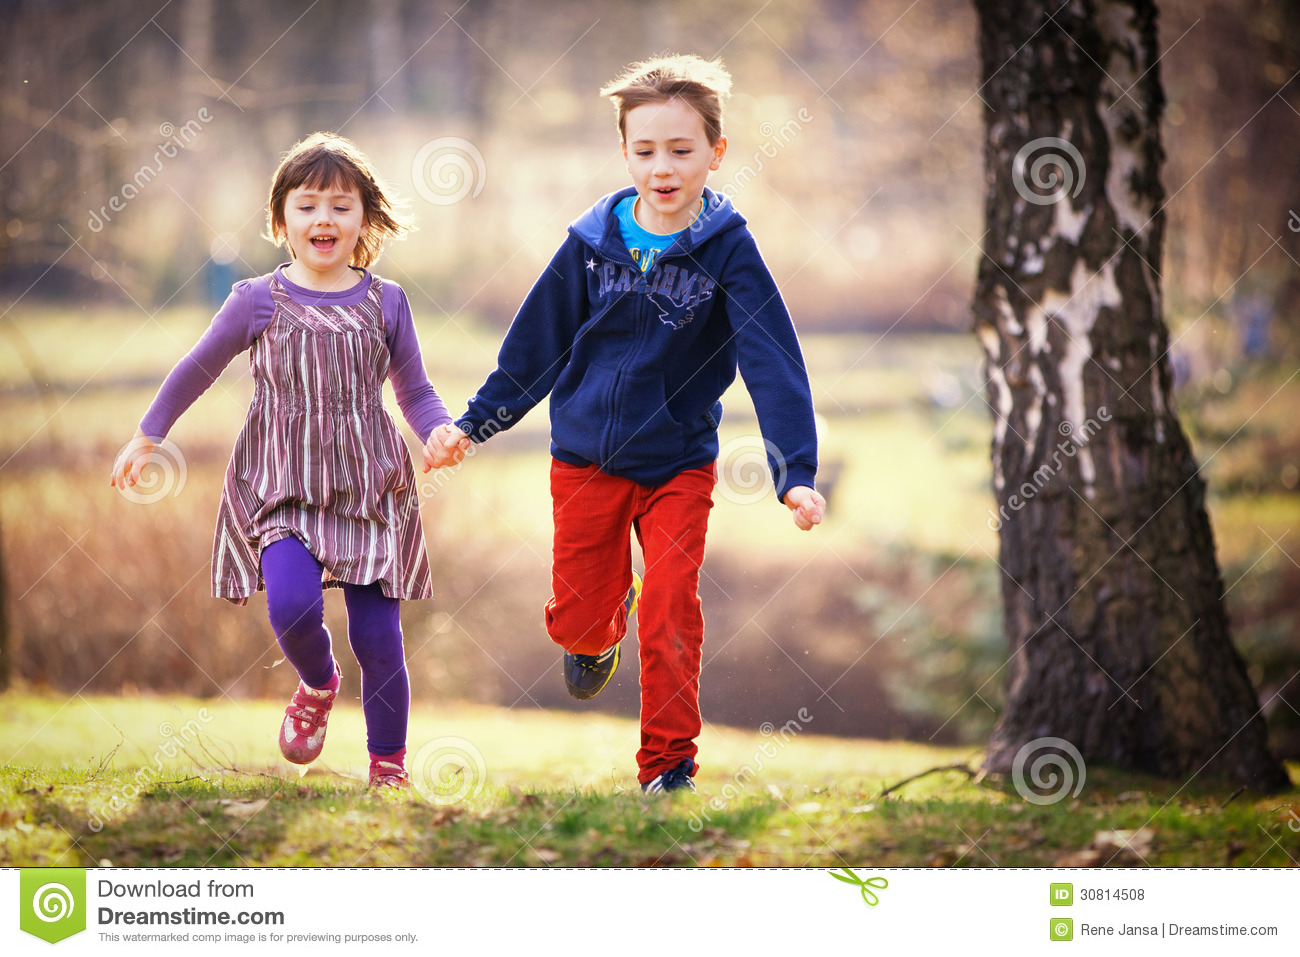 Brother And Sister Running Stock Photo Image Of Sibling - 30814508-5467